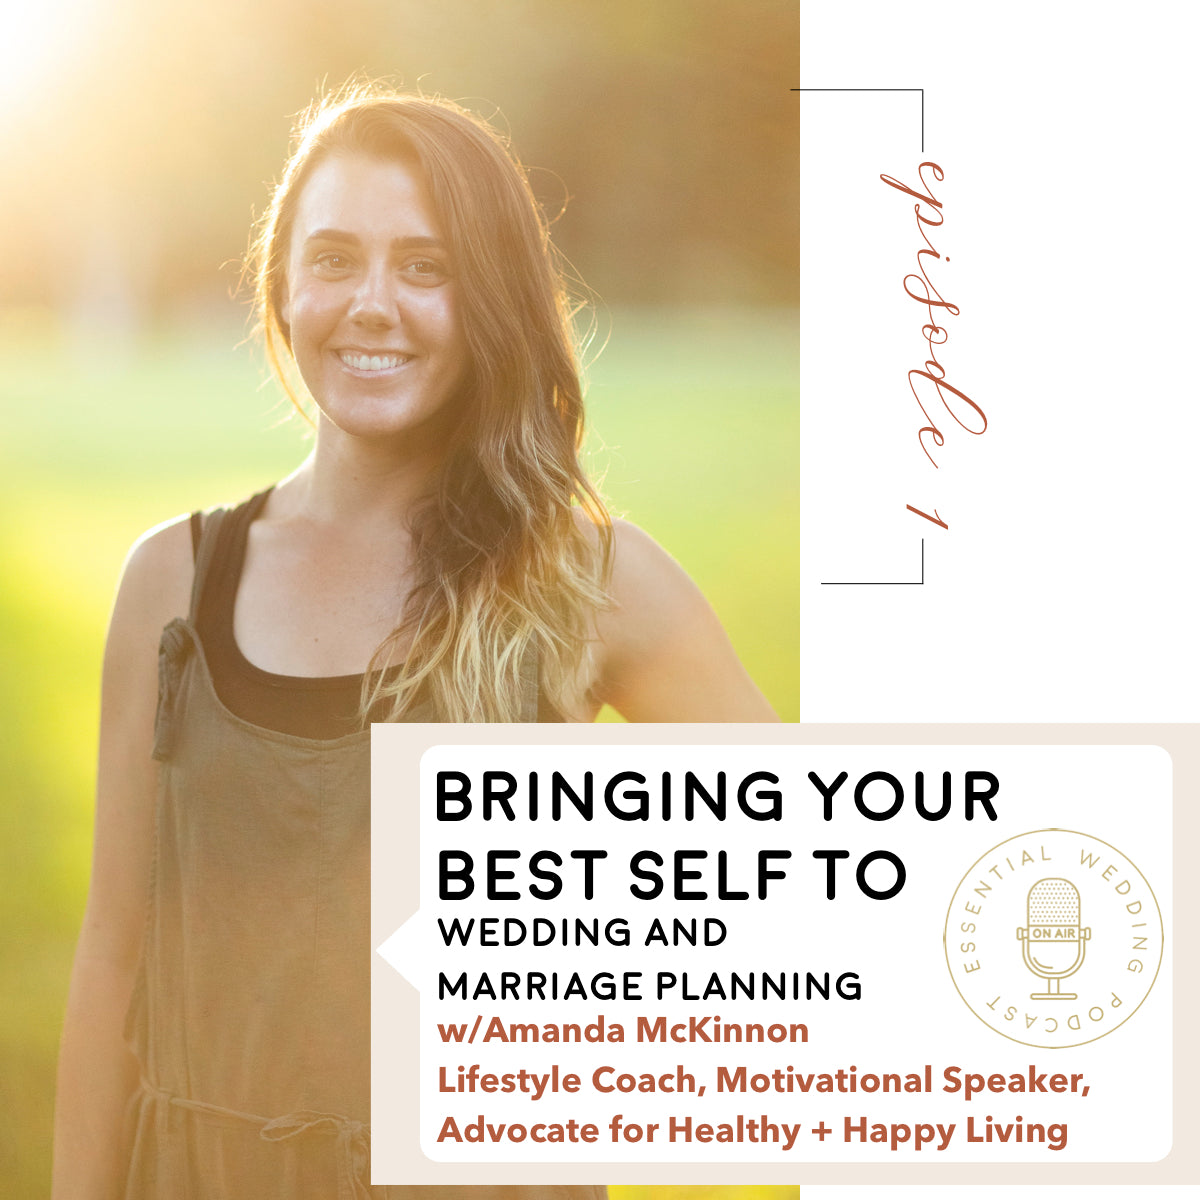 Ep. 1 How to Bring Your Best Self to Wedding and Marriage Planning w/Amanda McKinnon, Lifestyle Coach and Educator